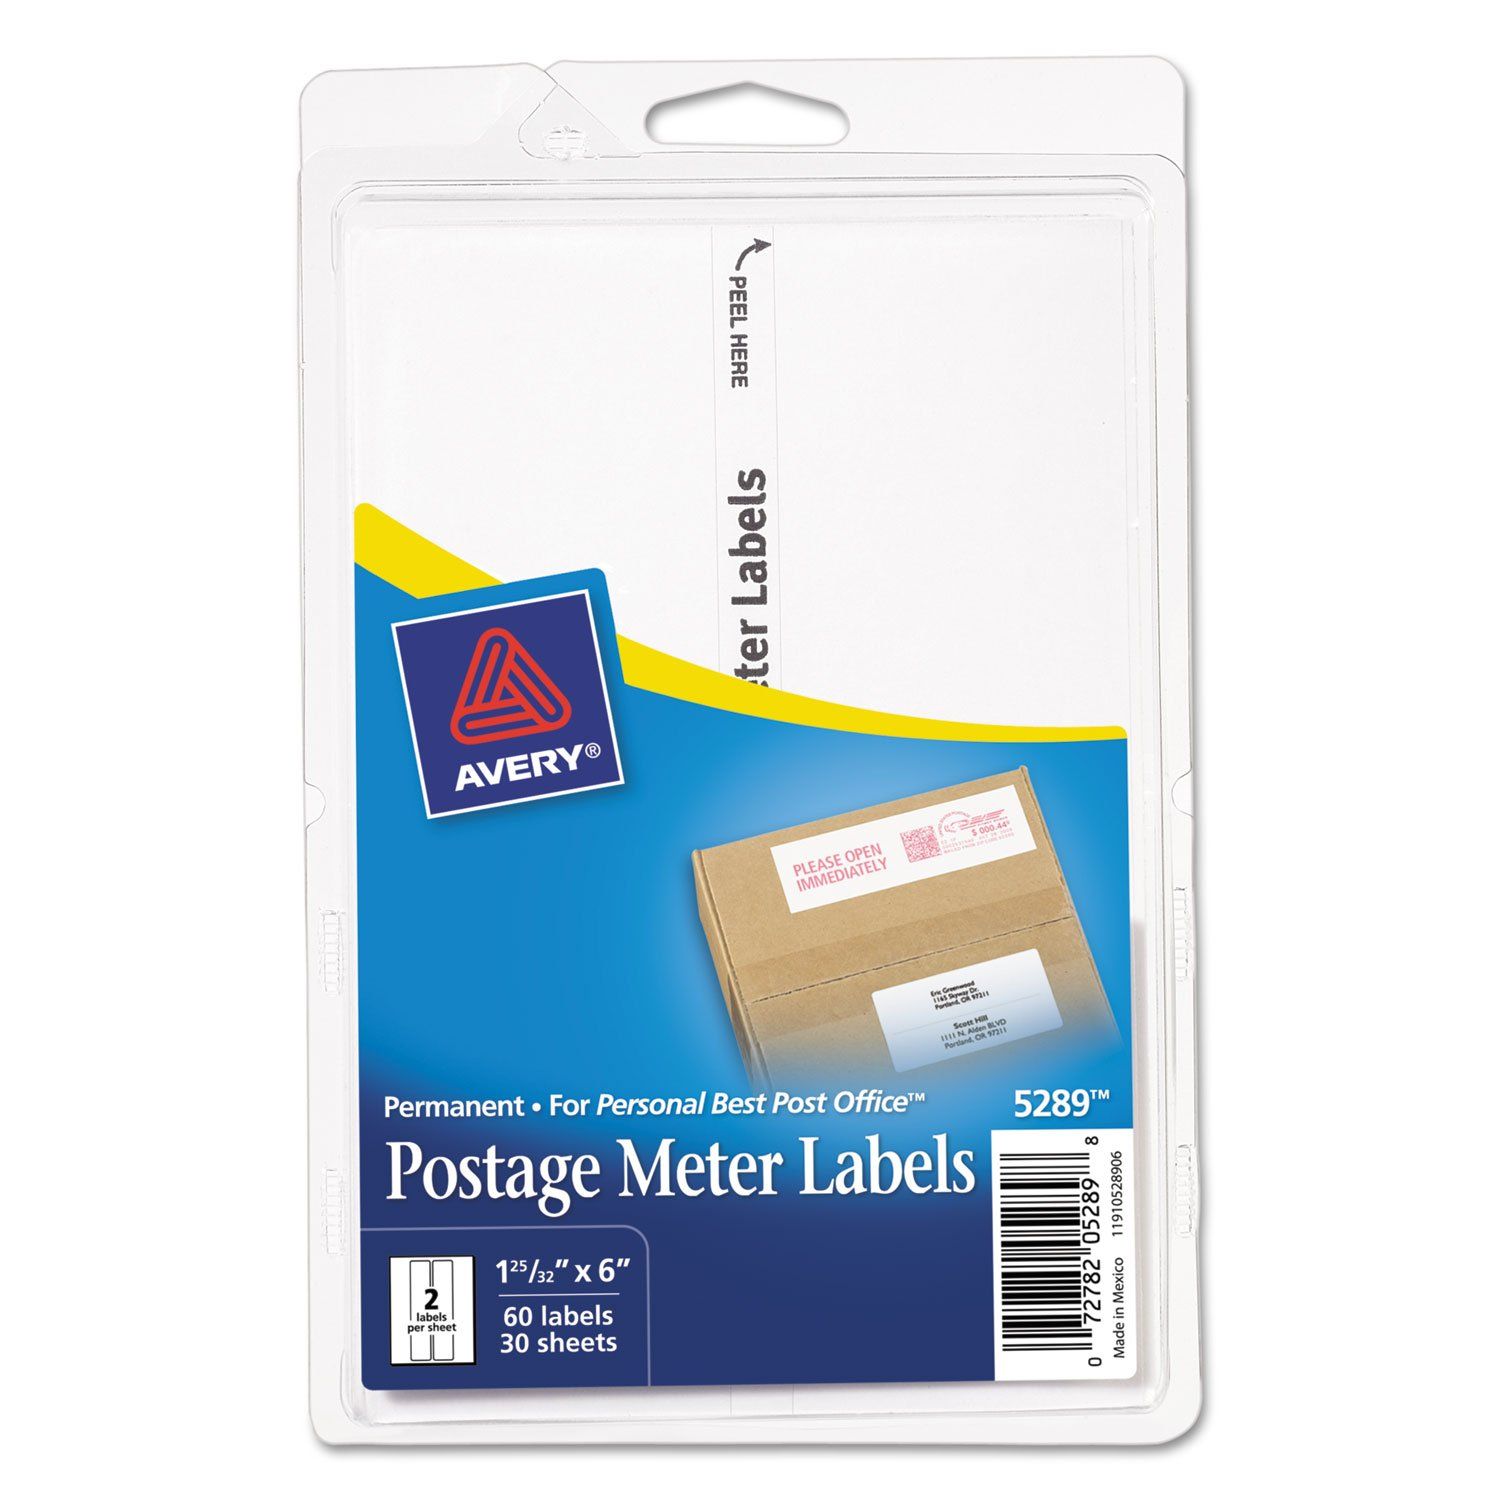 Avery Postage Meter Labels for Personal Post Office E700, 1-3/16 x 6, White, 60/Pack